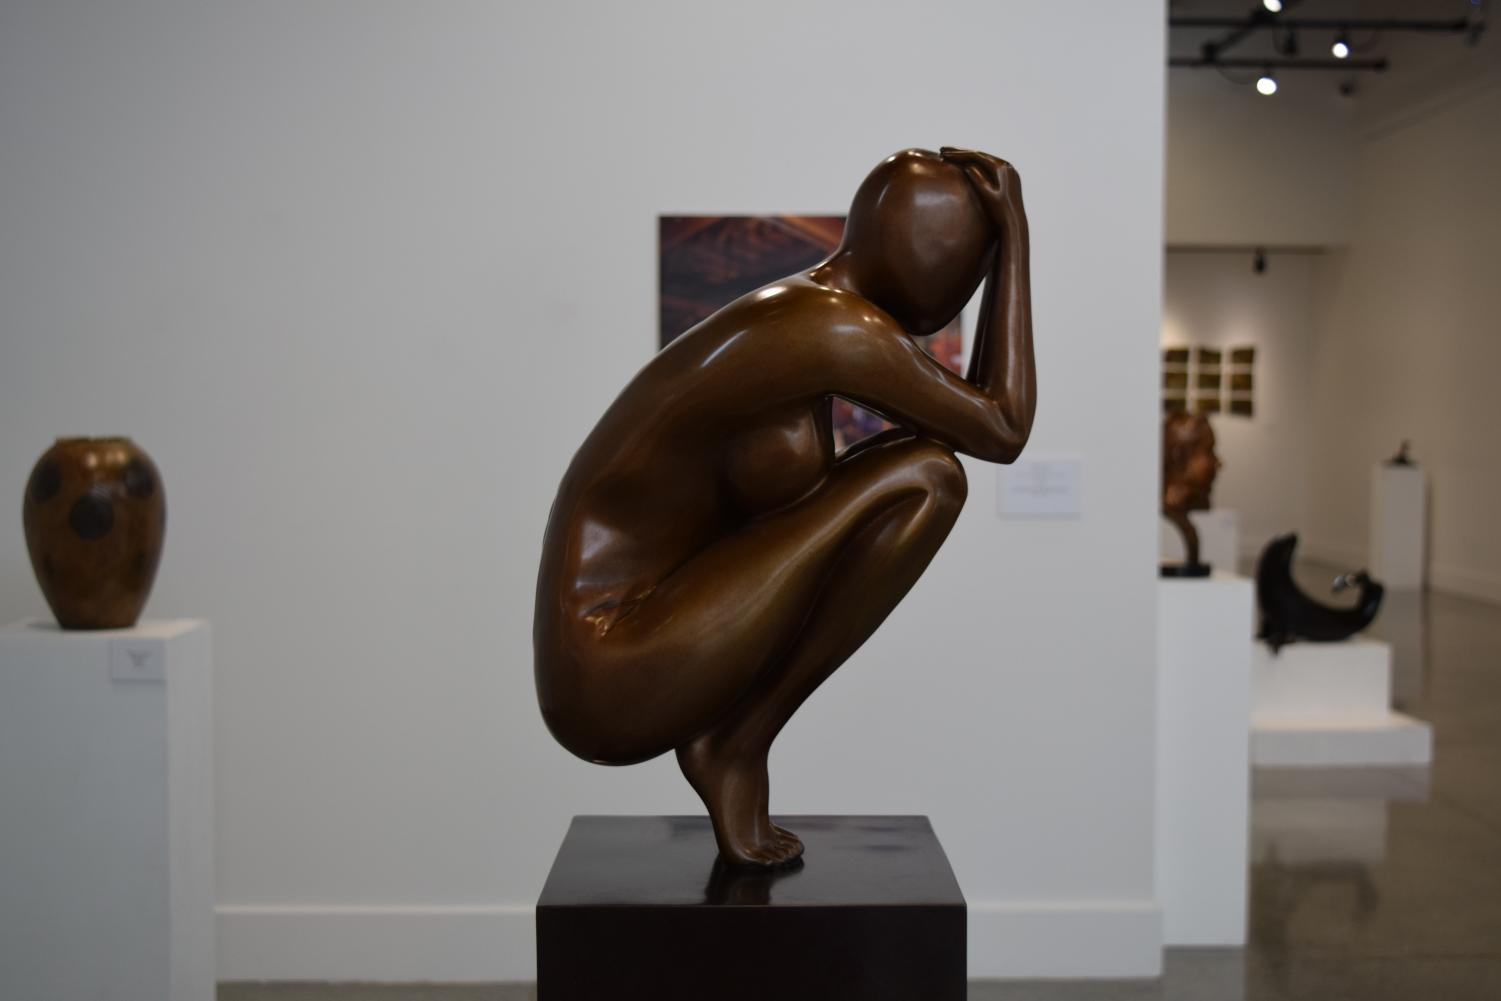 One of the sculptures in the Expressions in Bronze art exhibit. The exhibition is open until Nov. 30 from Monday through Thursday between 11 a.m - 5 p.m.